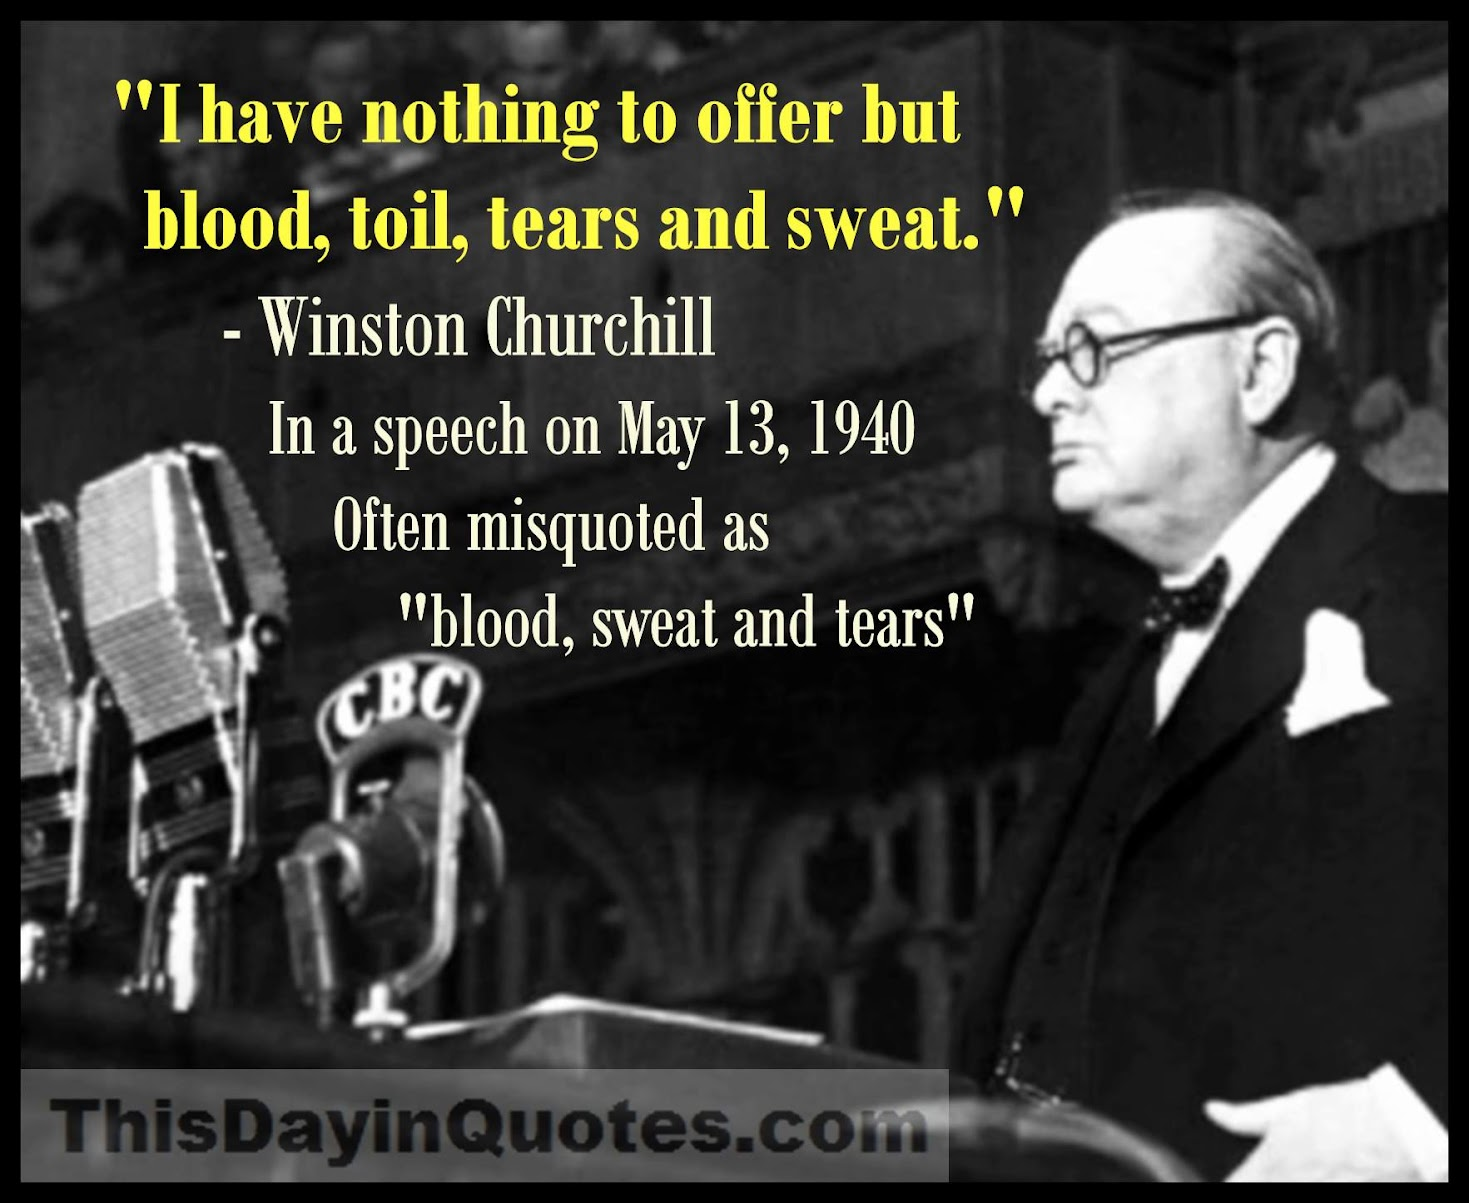 This Day In Quotes: Blood, Sweat And Tears